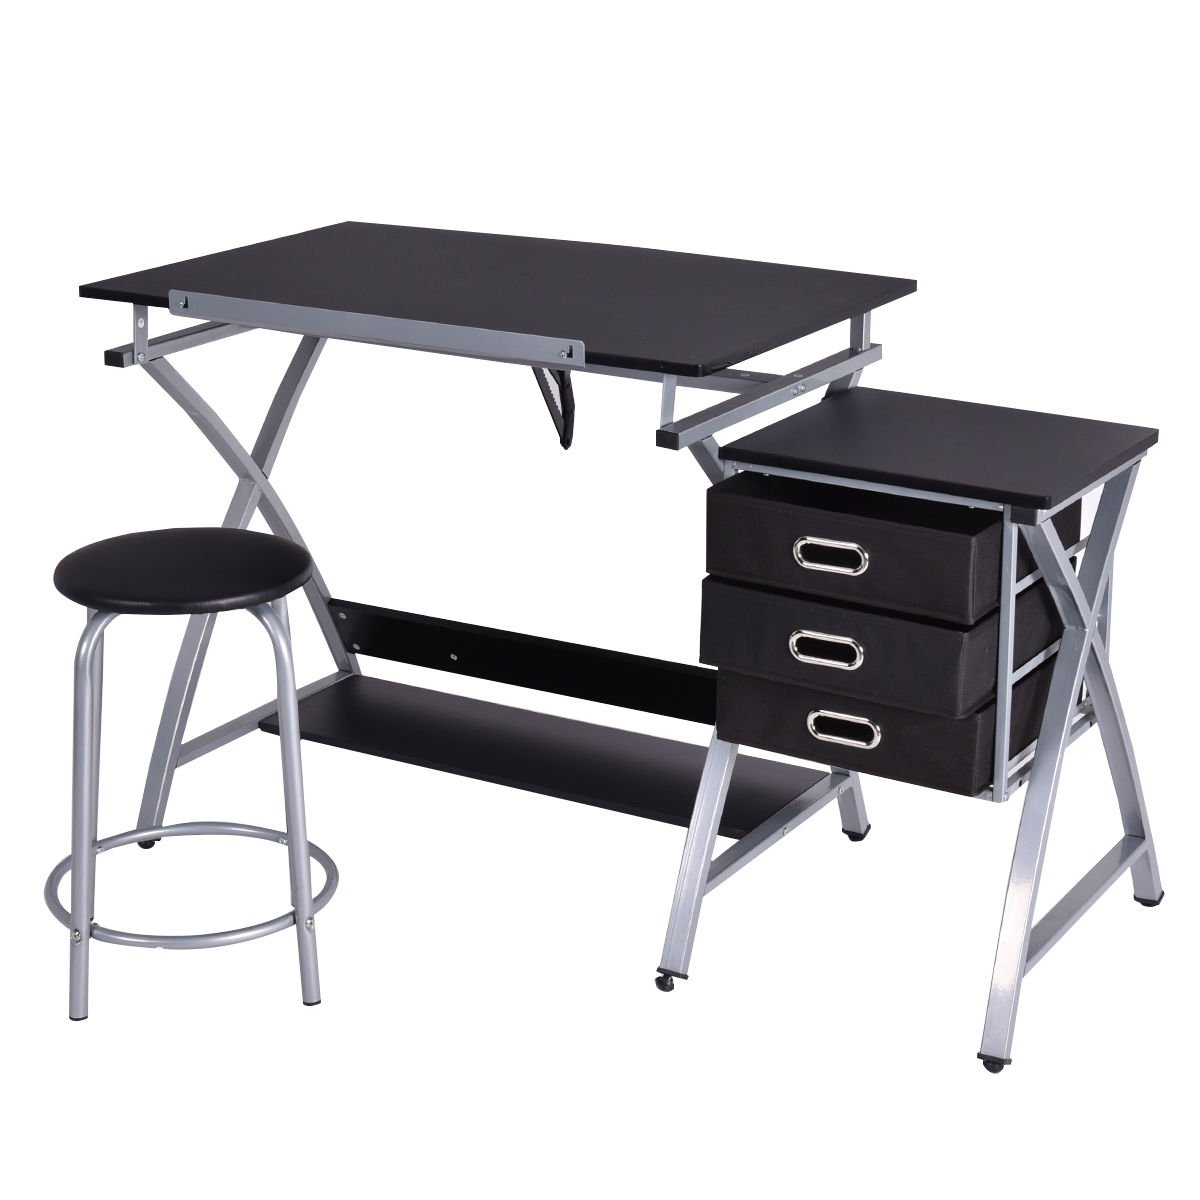 Amazon.com Tangkula Drafting Table Art u0026 Craft Drawing Desk Art Hobby Folding Adjustable w/ Stool (Black) Arts Crafts u0026 Sewing  sc 1 st  Amazon.com & Amazon.com: Tangkula Drafting Table Art u0026 Craft Drawing Desk Art ... islam-shia.org